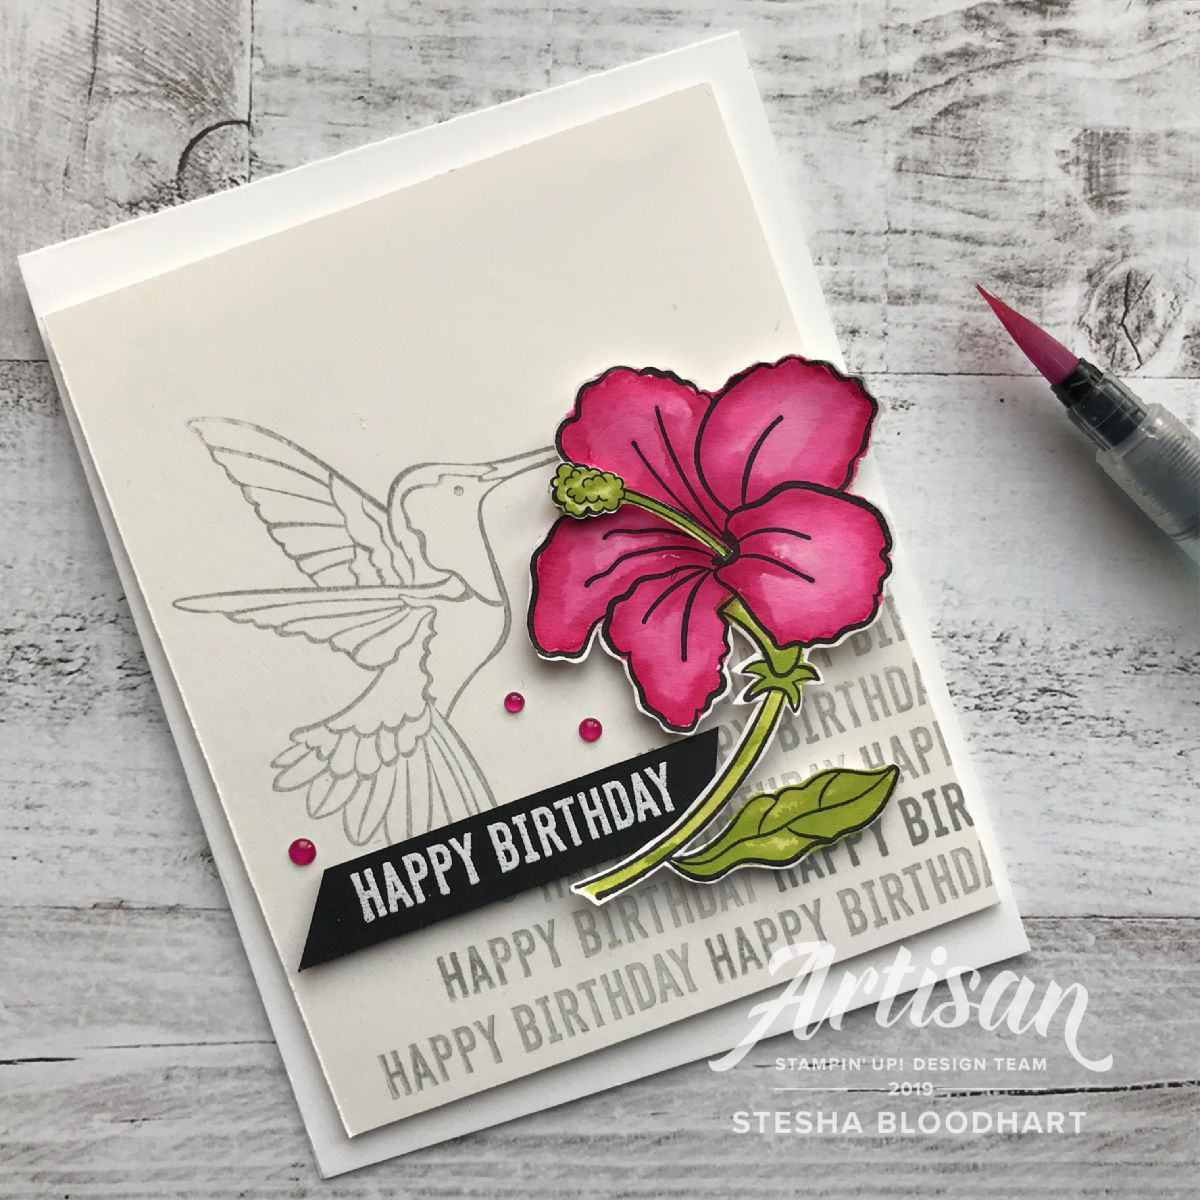 Humming Along and Itty Bitty Birthdays Cling Stamp Sets by Stampin' Up! Card Created by Artisan Stesha Bloodhart, Stampin' Hoot! for the #tgifc193 Color Challenge